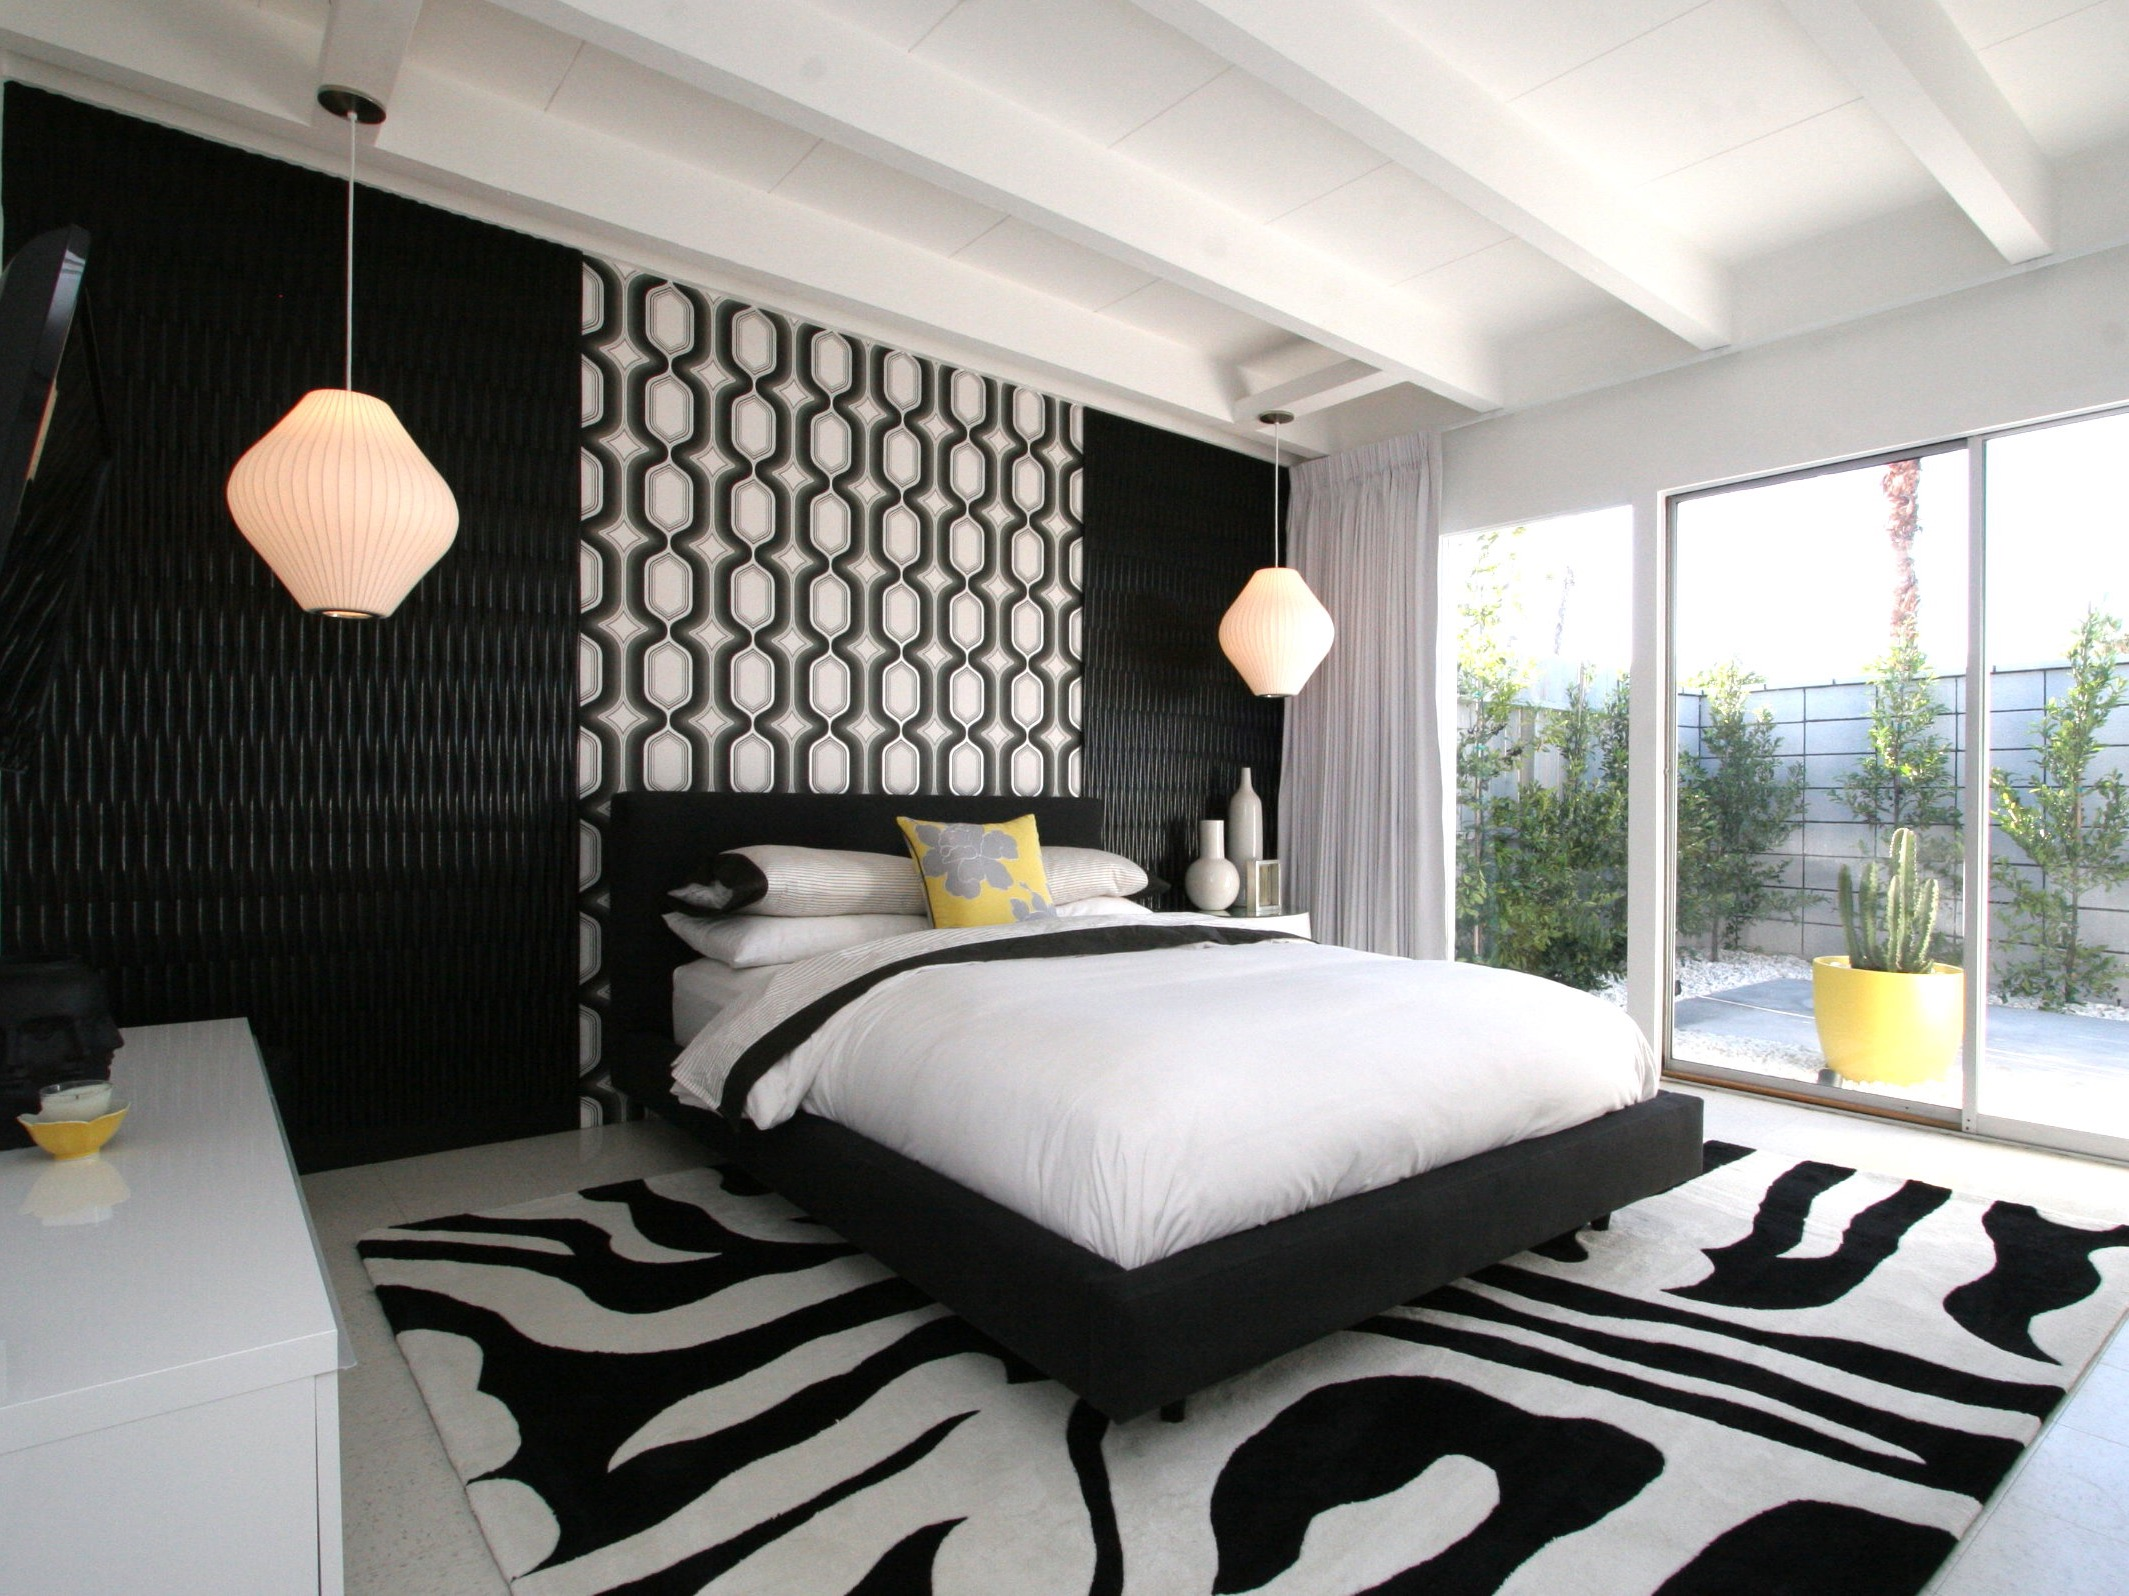 Black And White Modern Bedroom With Large Glass Door (View 4 of 23)